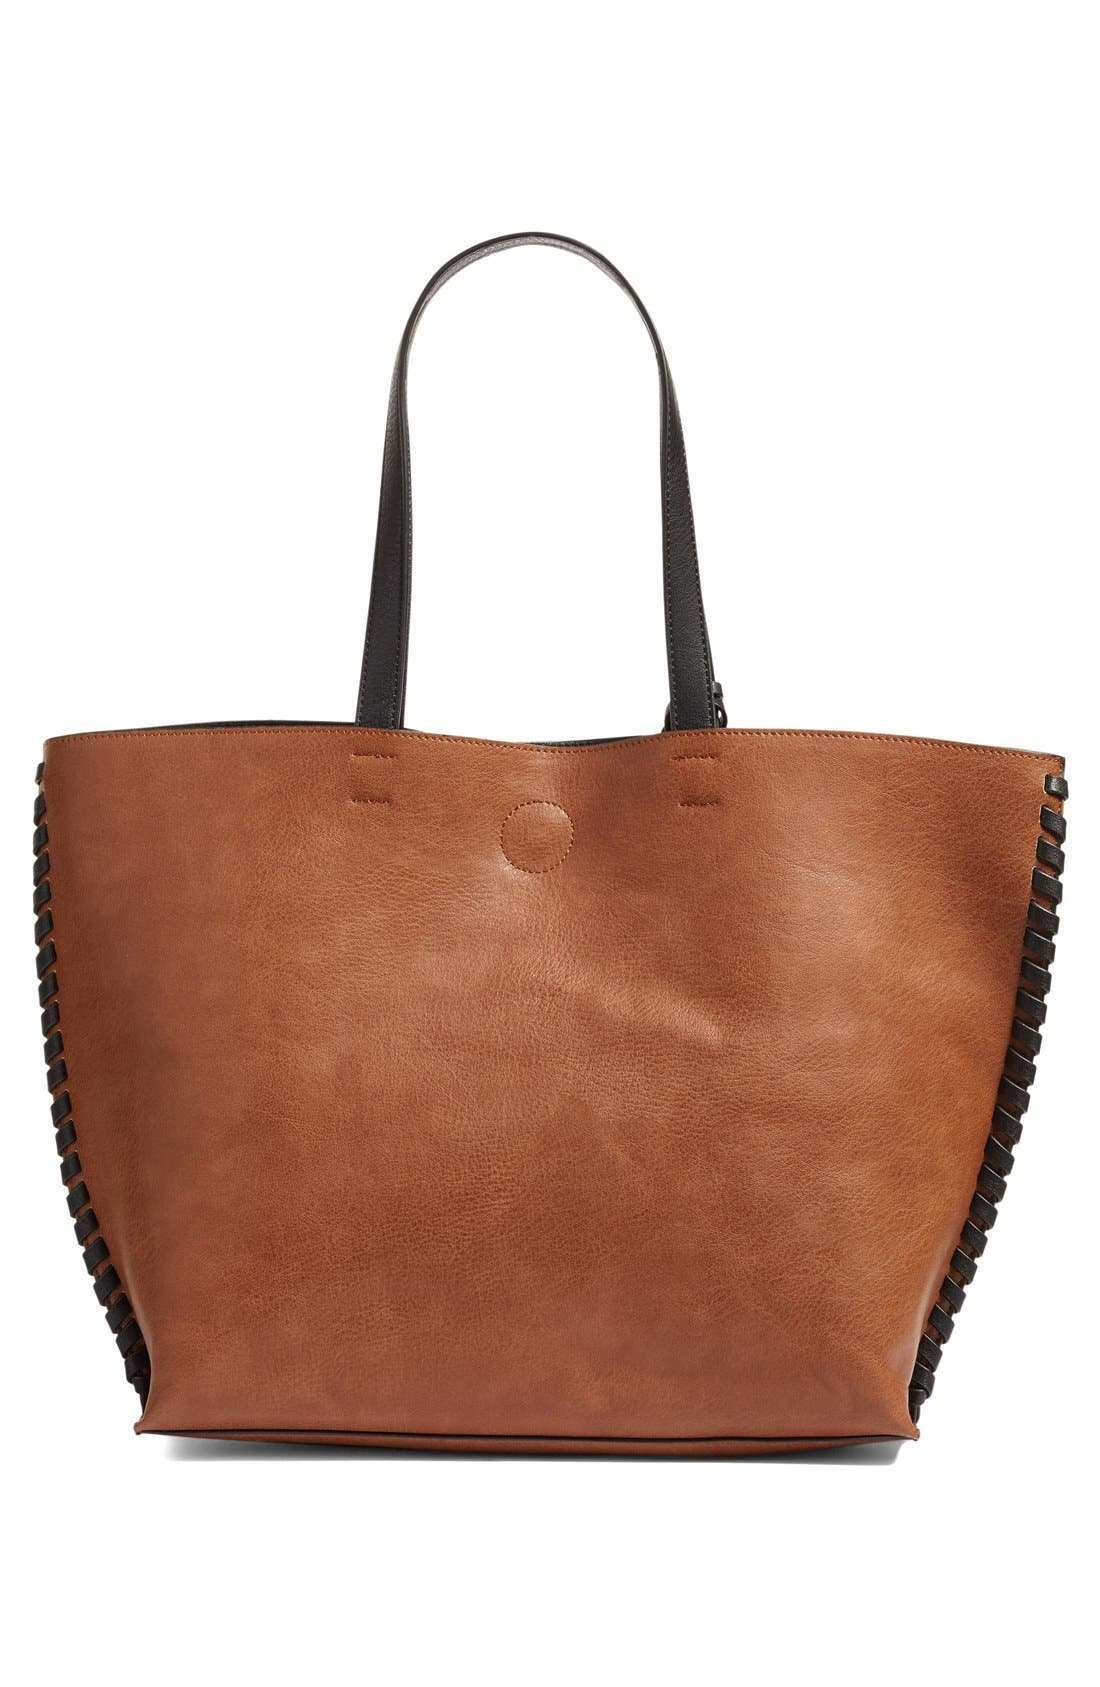 Alternate Image 3  - Phase 3 Whipstitch Tassel Faux Leather Tote